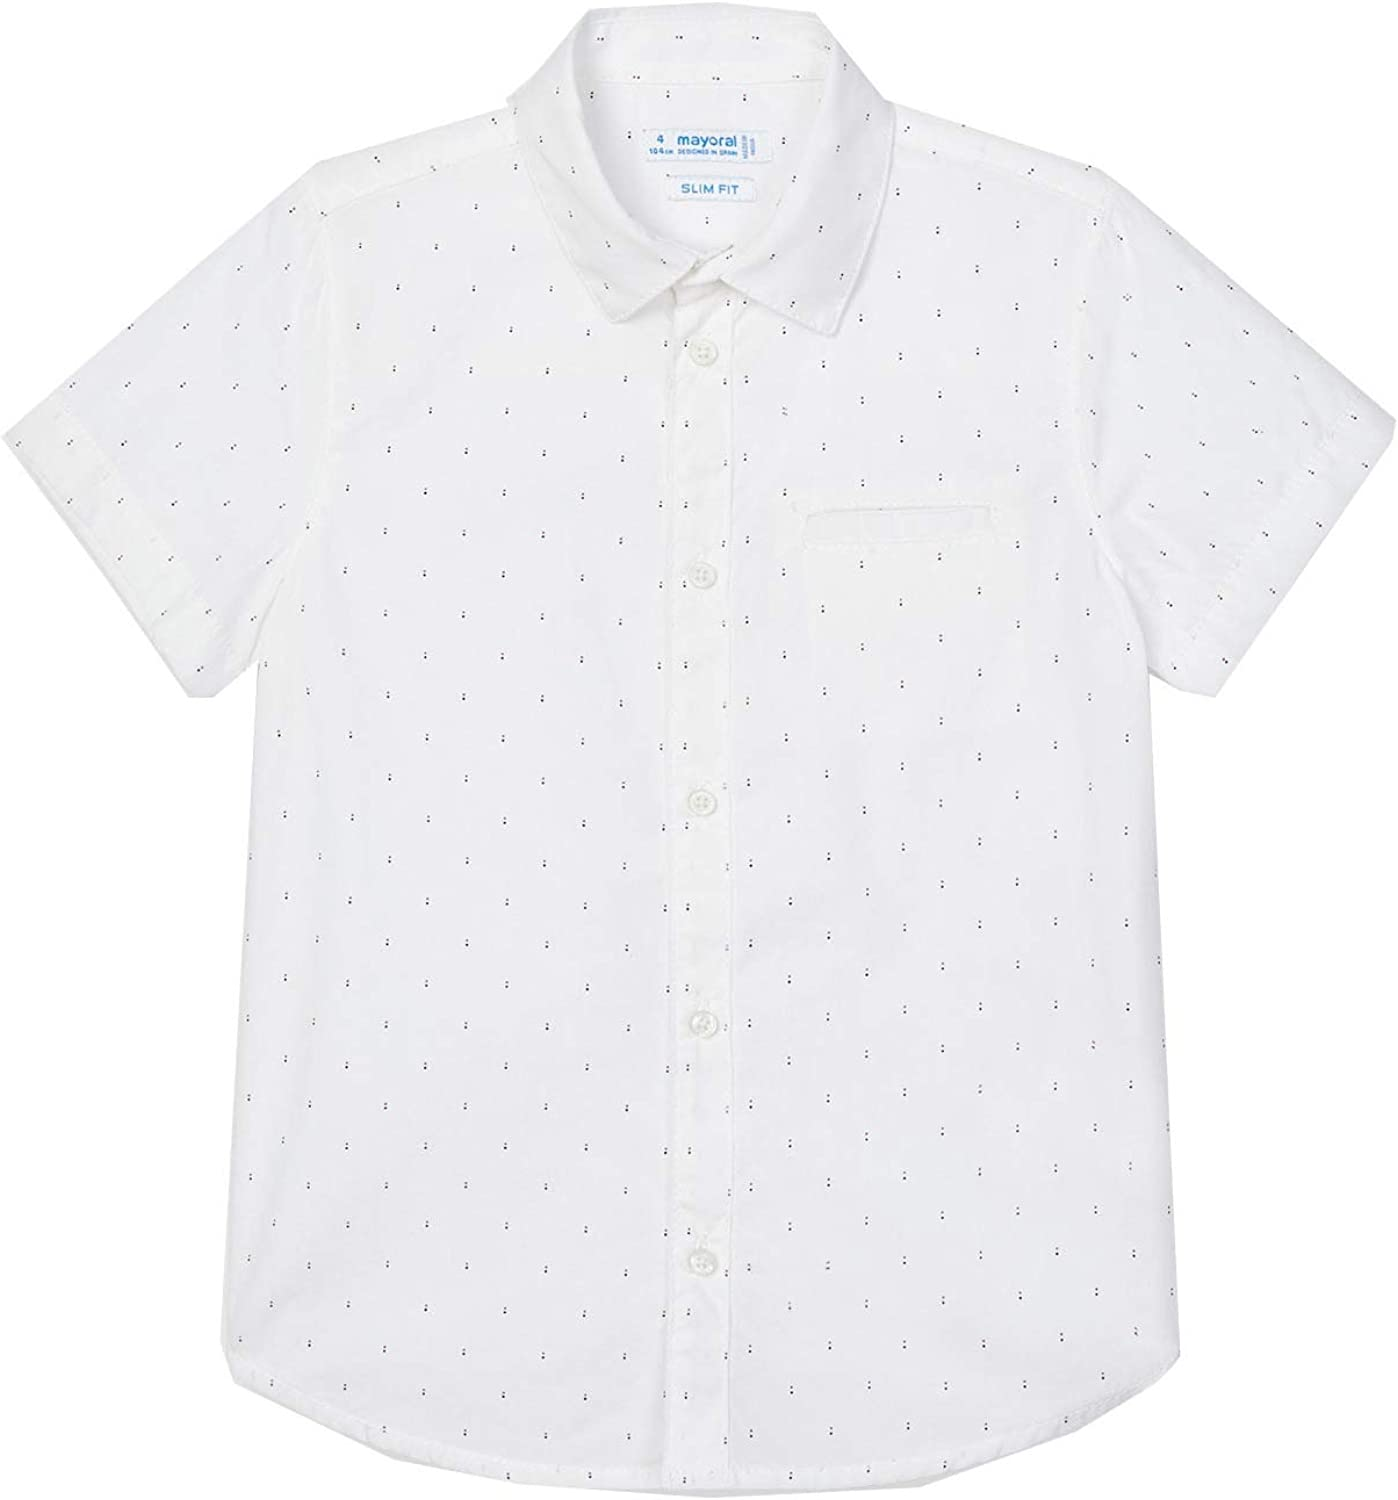 Mayoral - micropatterned s/s Shirt for Boys - 3116, White